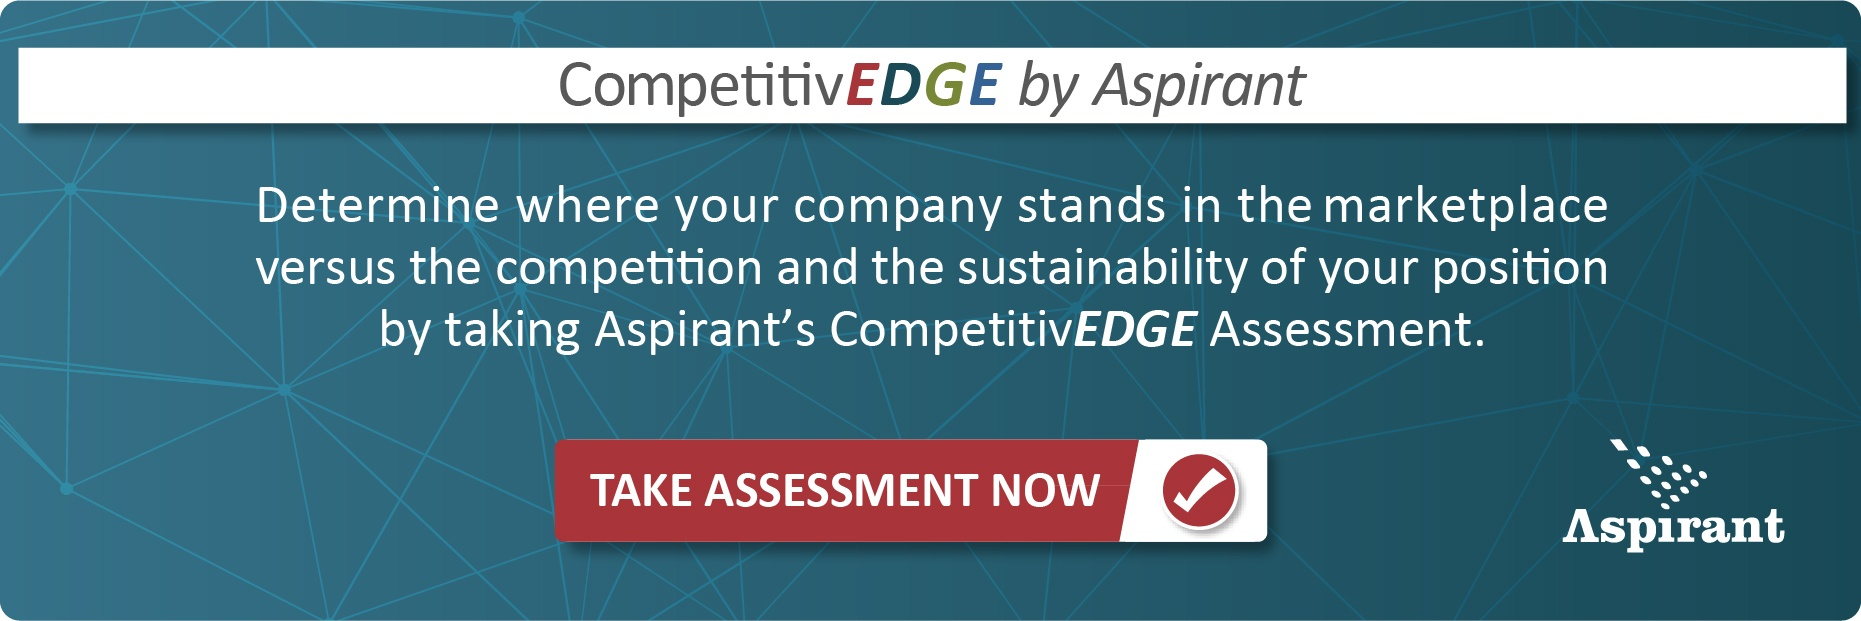 CompetivEDGE Assessment by Aspirant for competition.